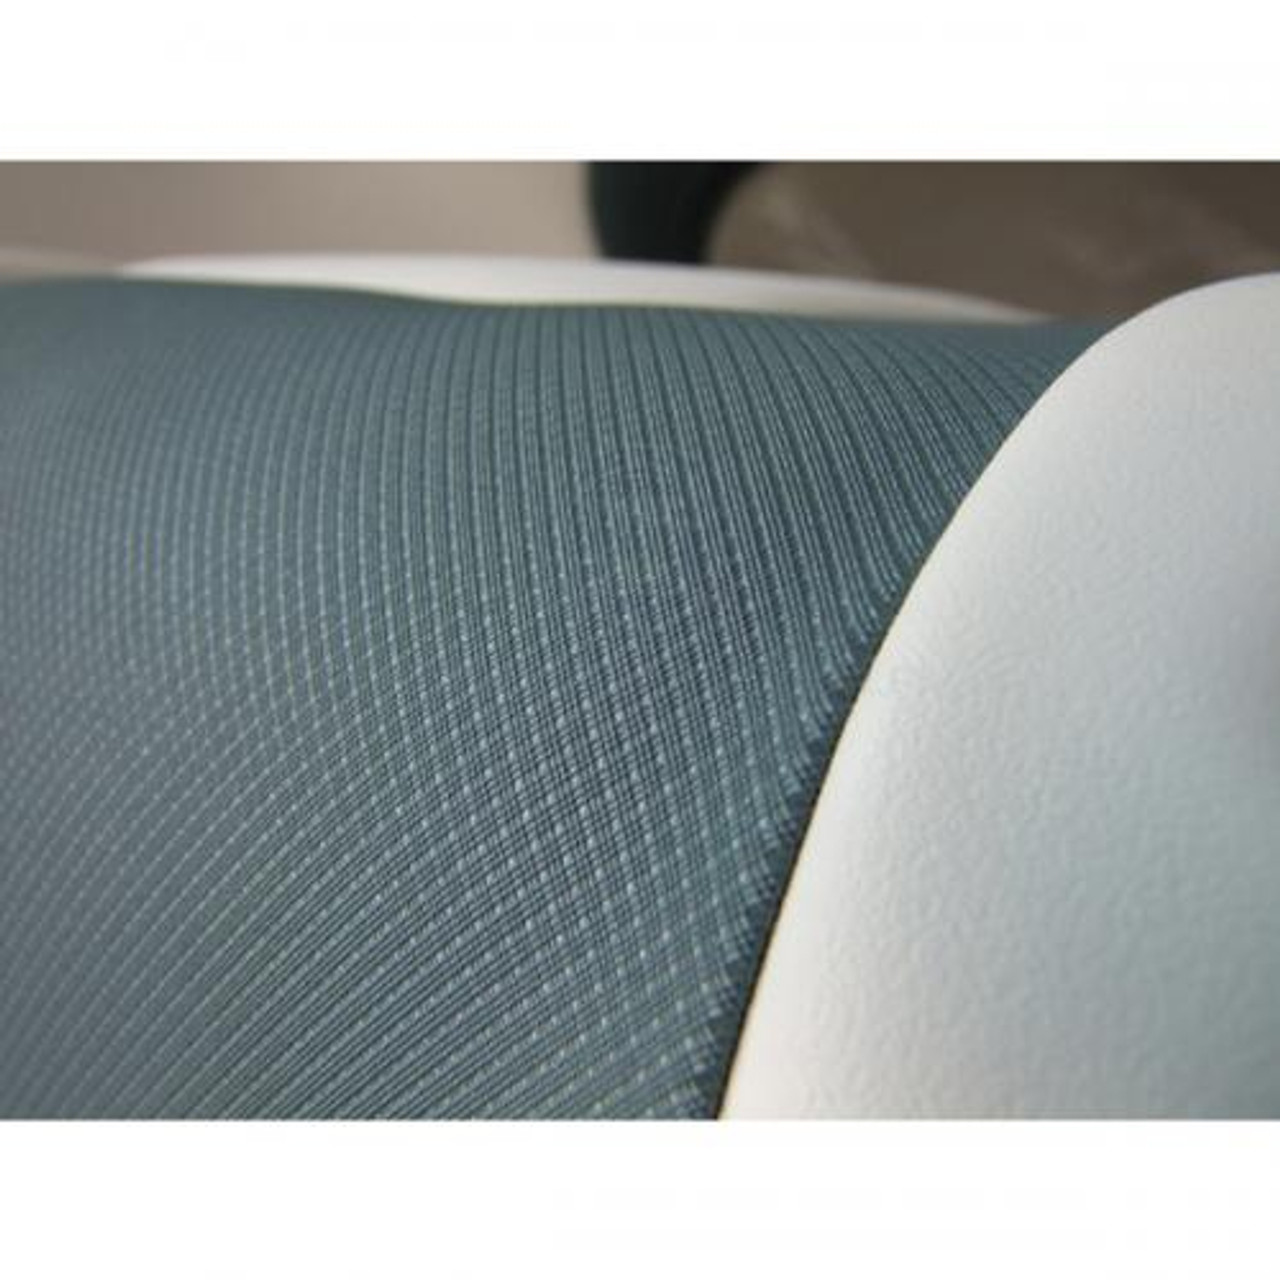 Relaxn Seat - Cruiser Series with High Back